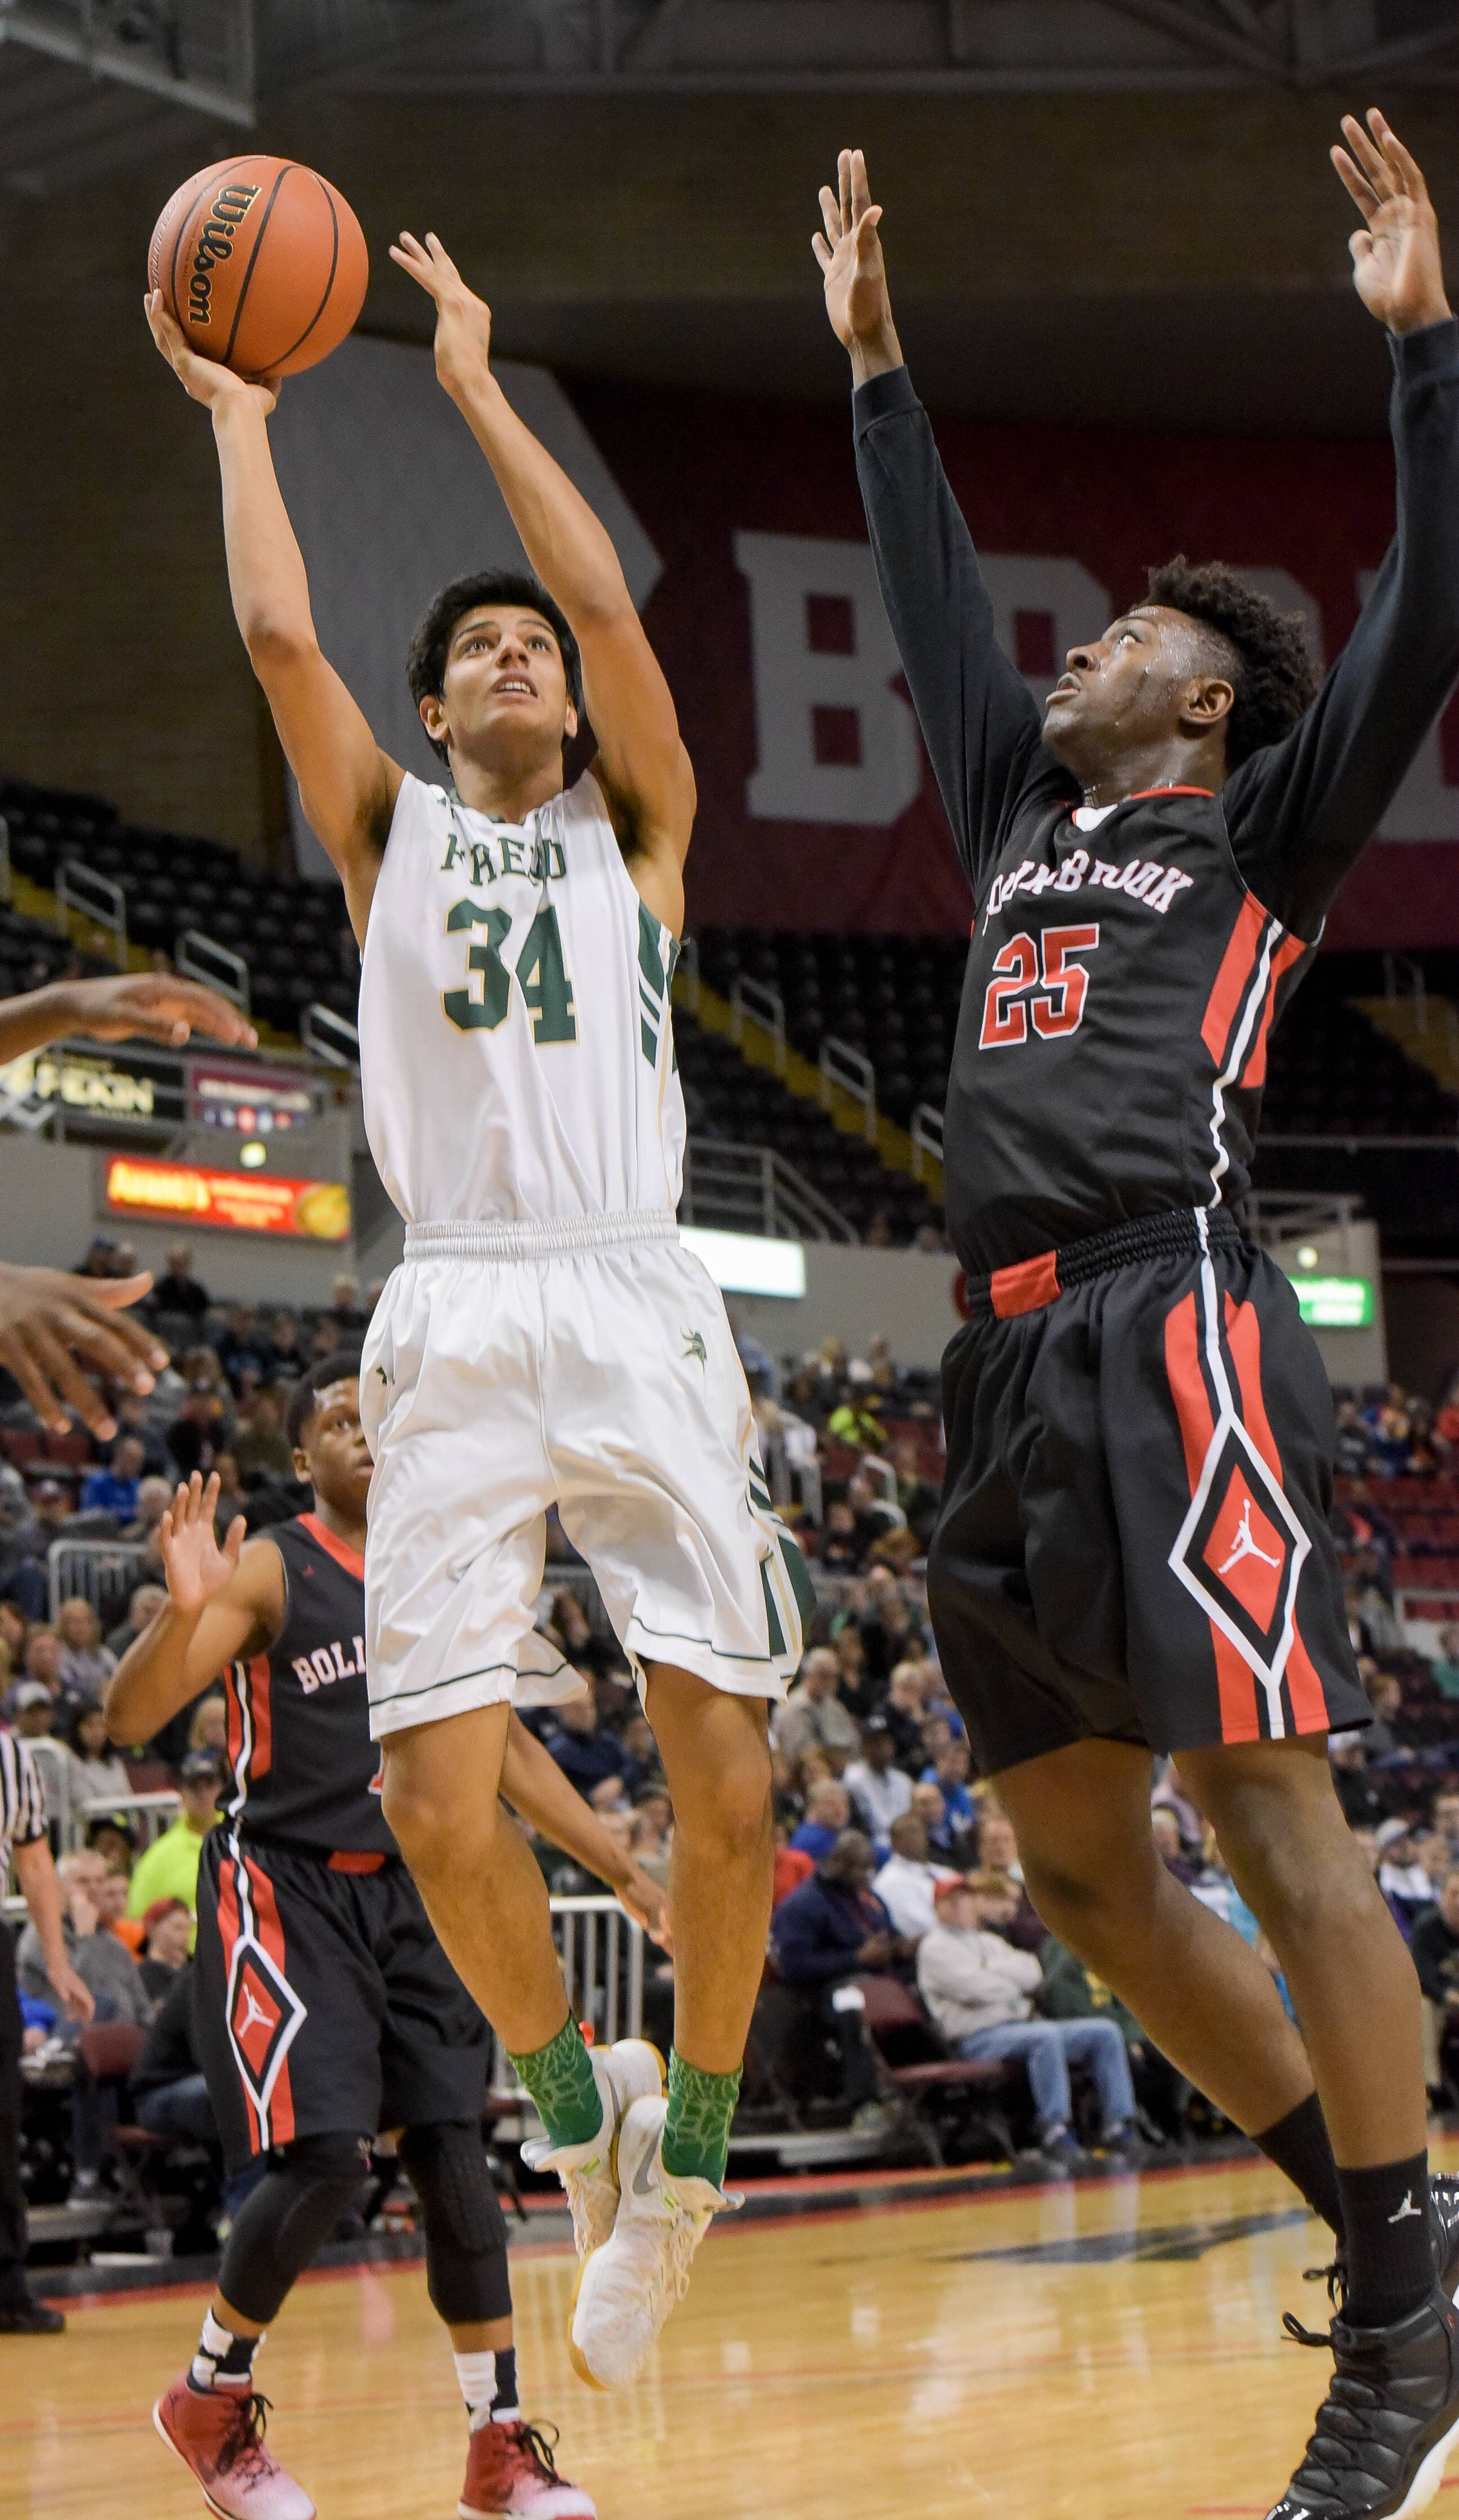 Fremd's Shaan Patel goes up for a shot after getting past Bolingbrook's Nana Akenten during the Class 4A third-place game Saturday in Peoria.